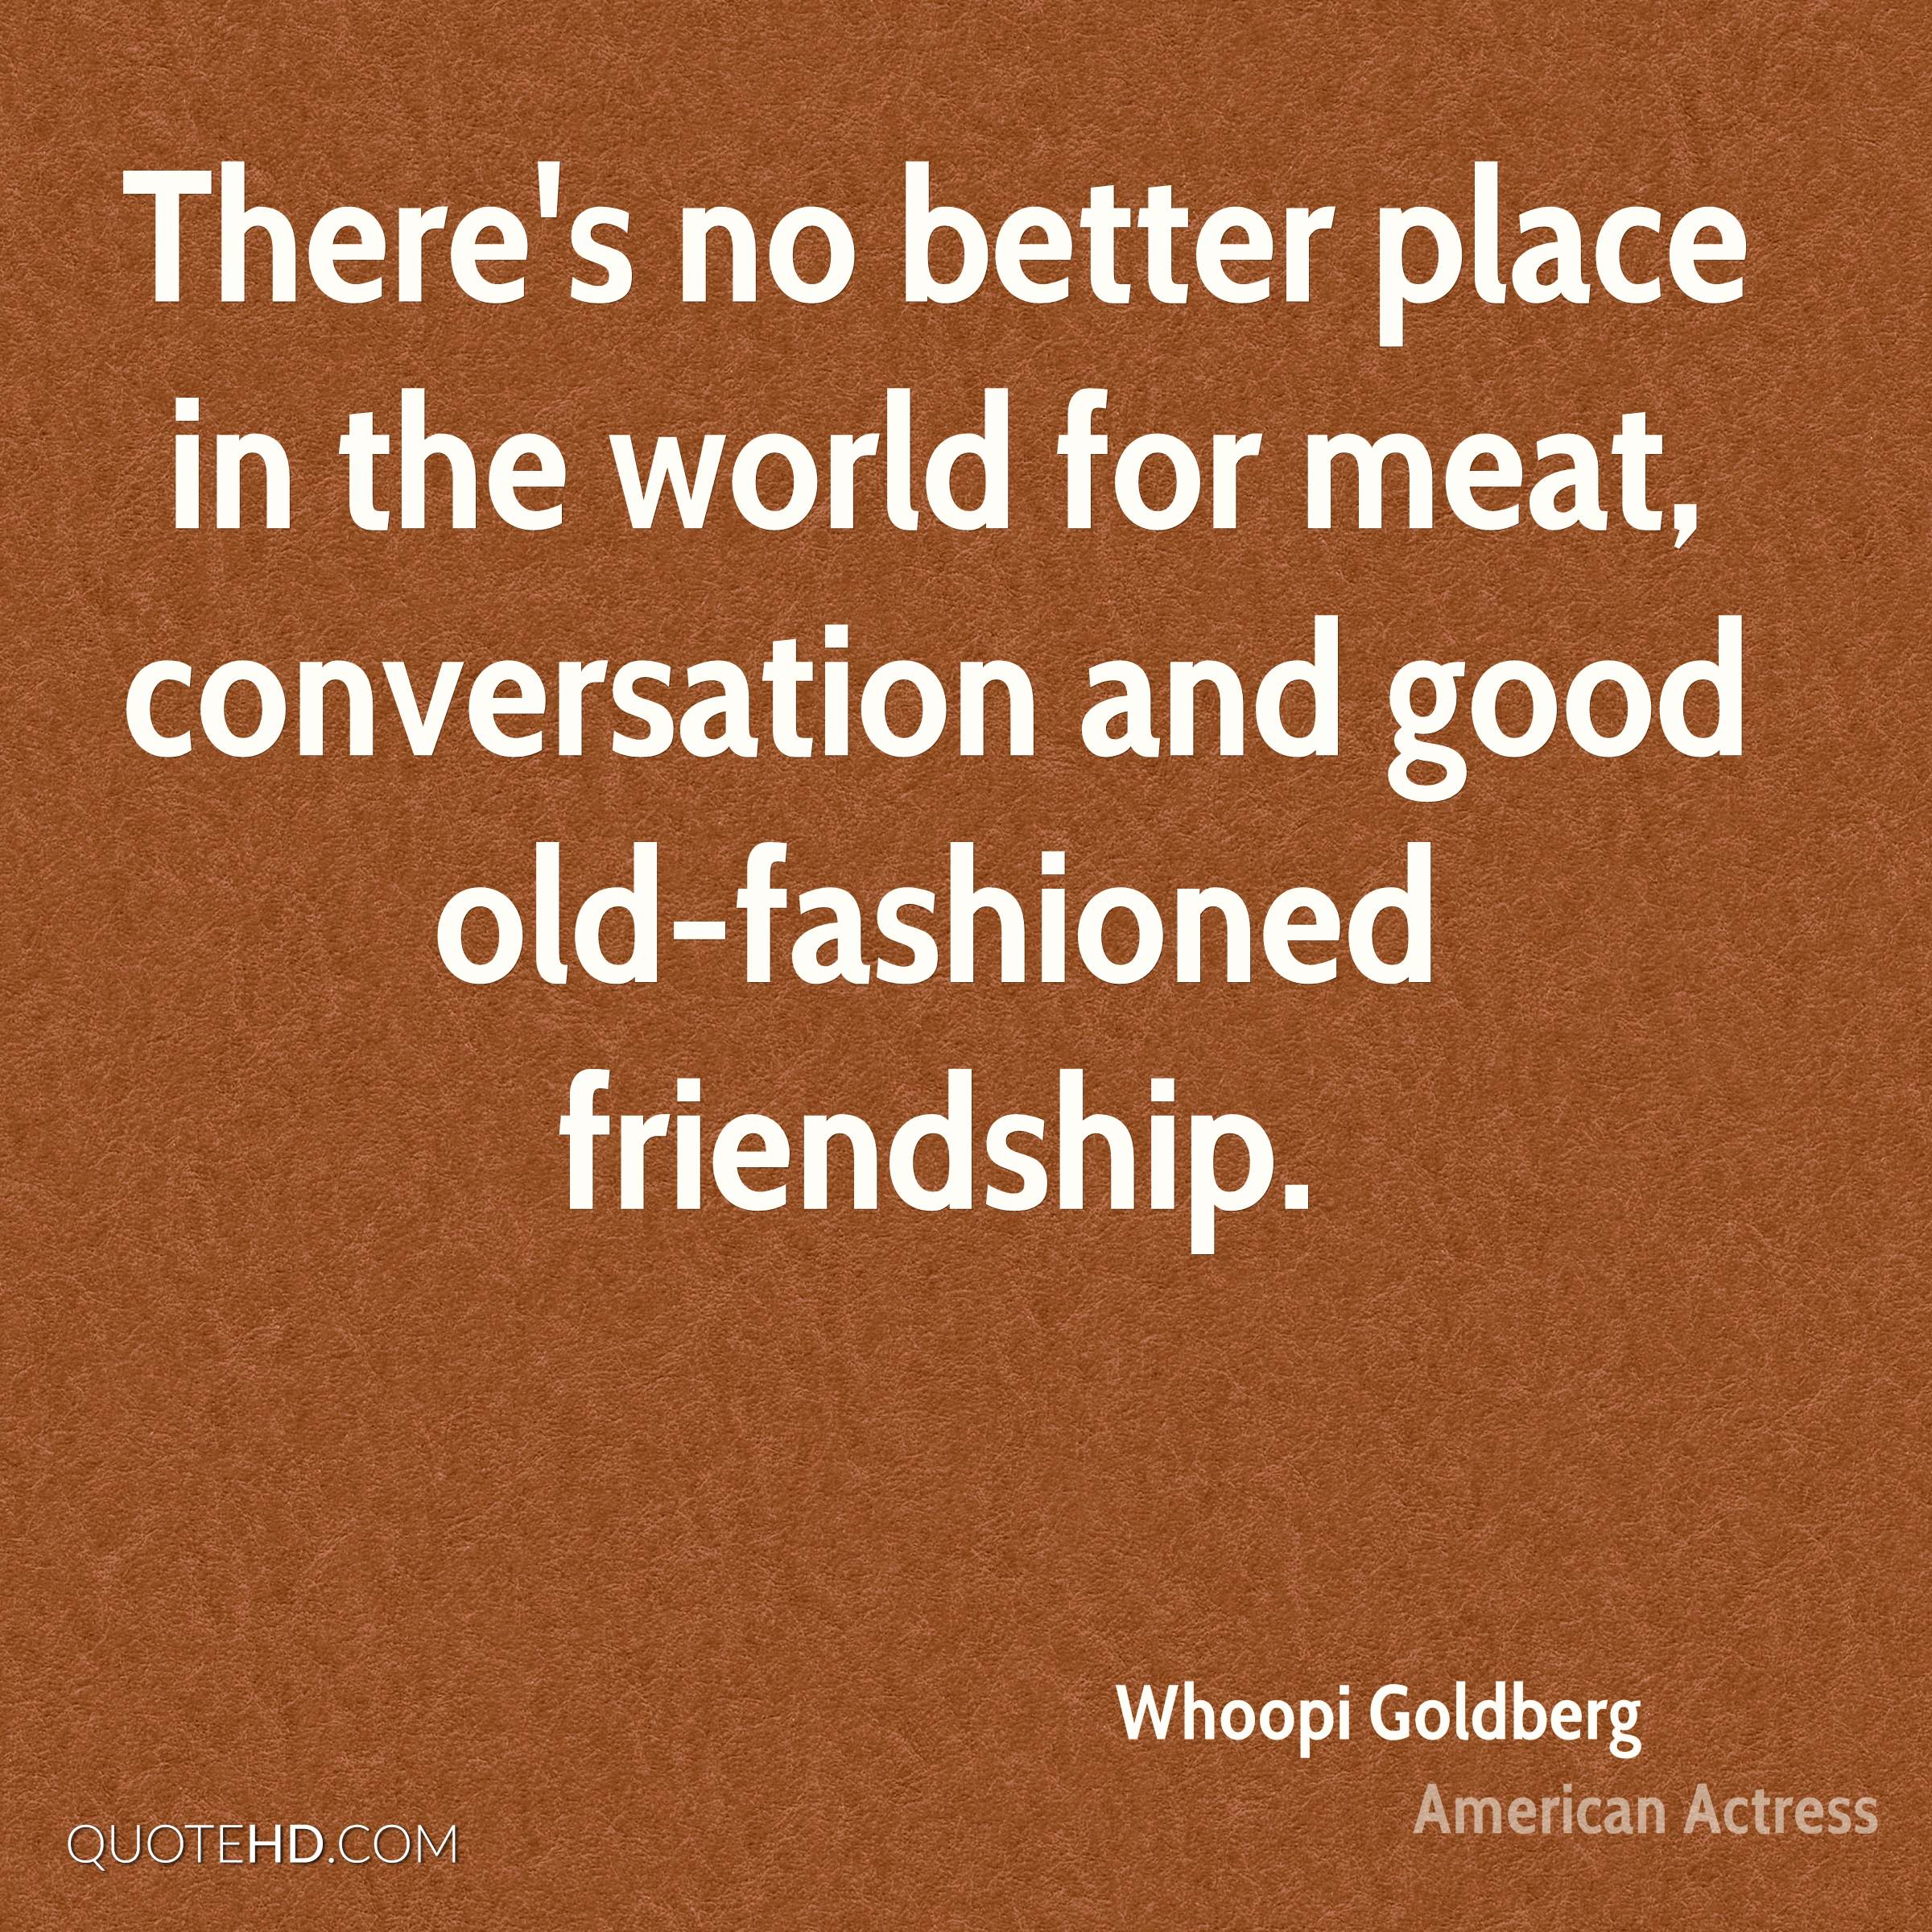 Good Quote About Friendship Whoopi Goldberg Friendship Quotes  Quotehd